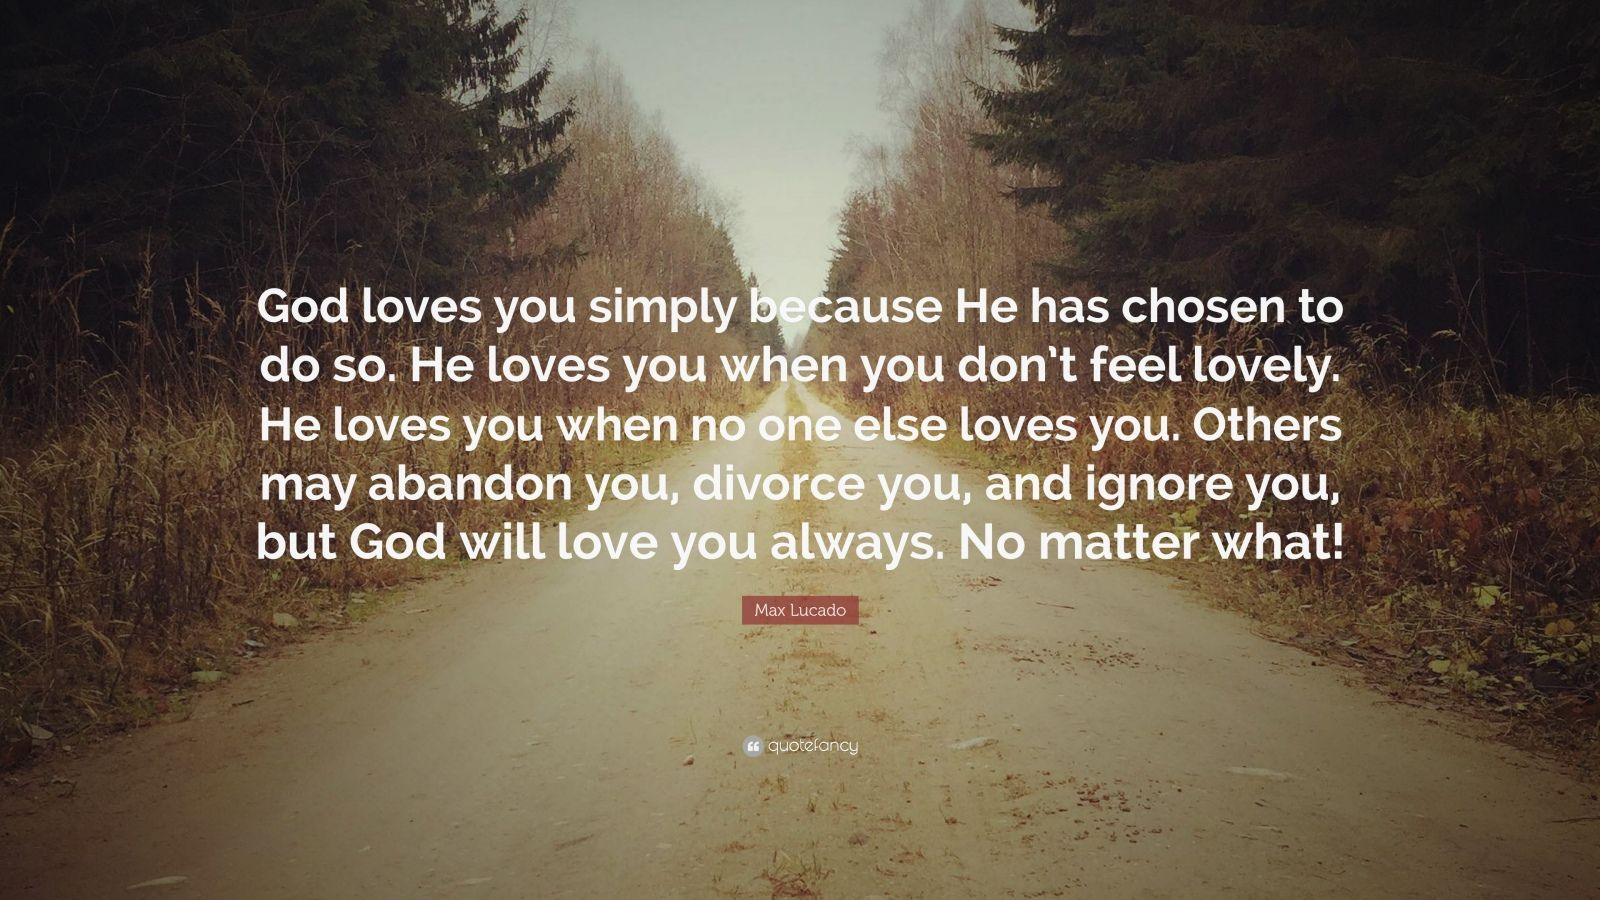 "Love You Quotes: ""God loves you simply because He has chosen to do so. He loves you when you don't feel lovely. He loves you when no one else loves you. Others may abandon you, divorce you, and ignore you, but God will love you always. No matter what!"" — Max Lucado"